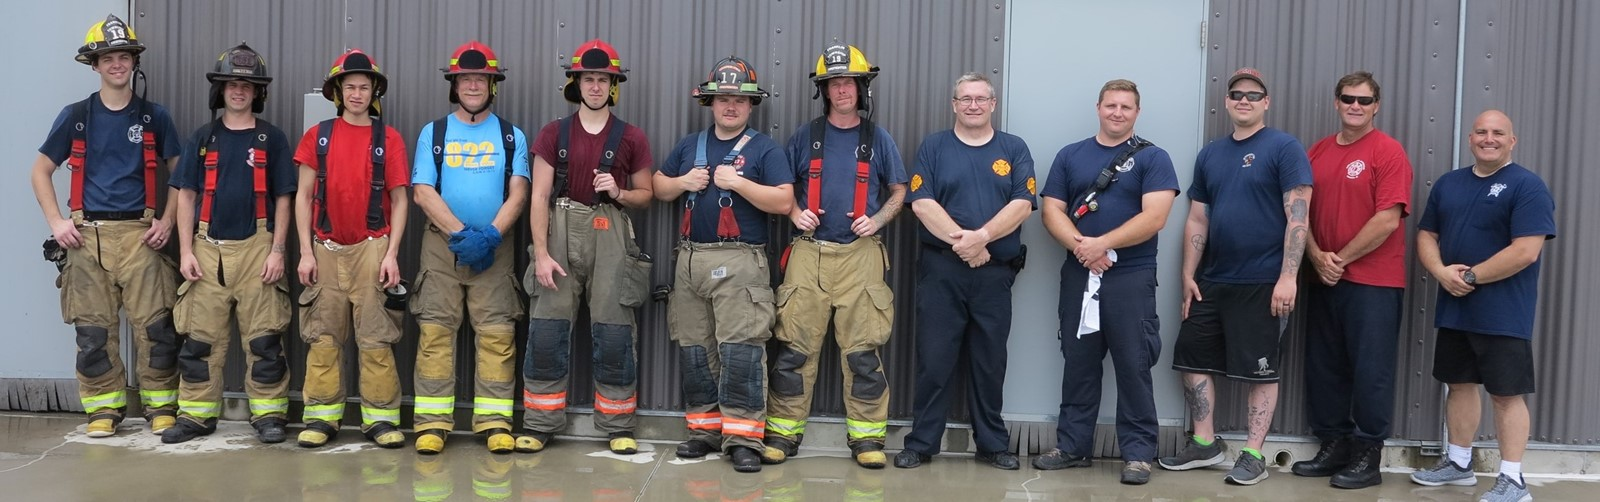 Firefighter I Adult Class